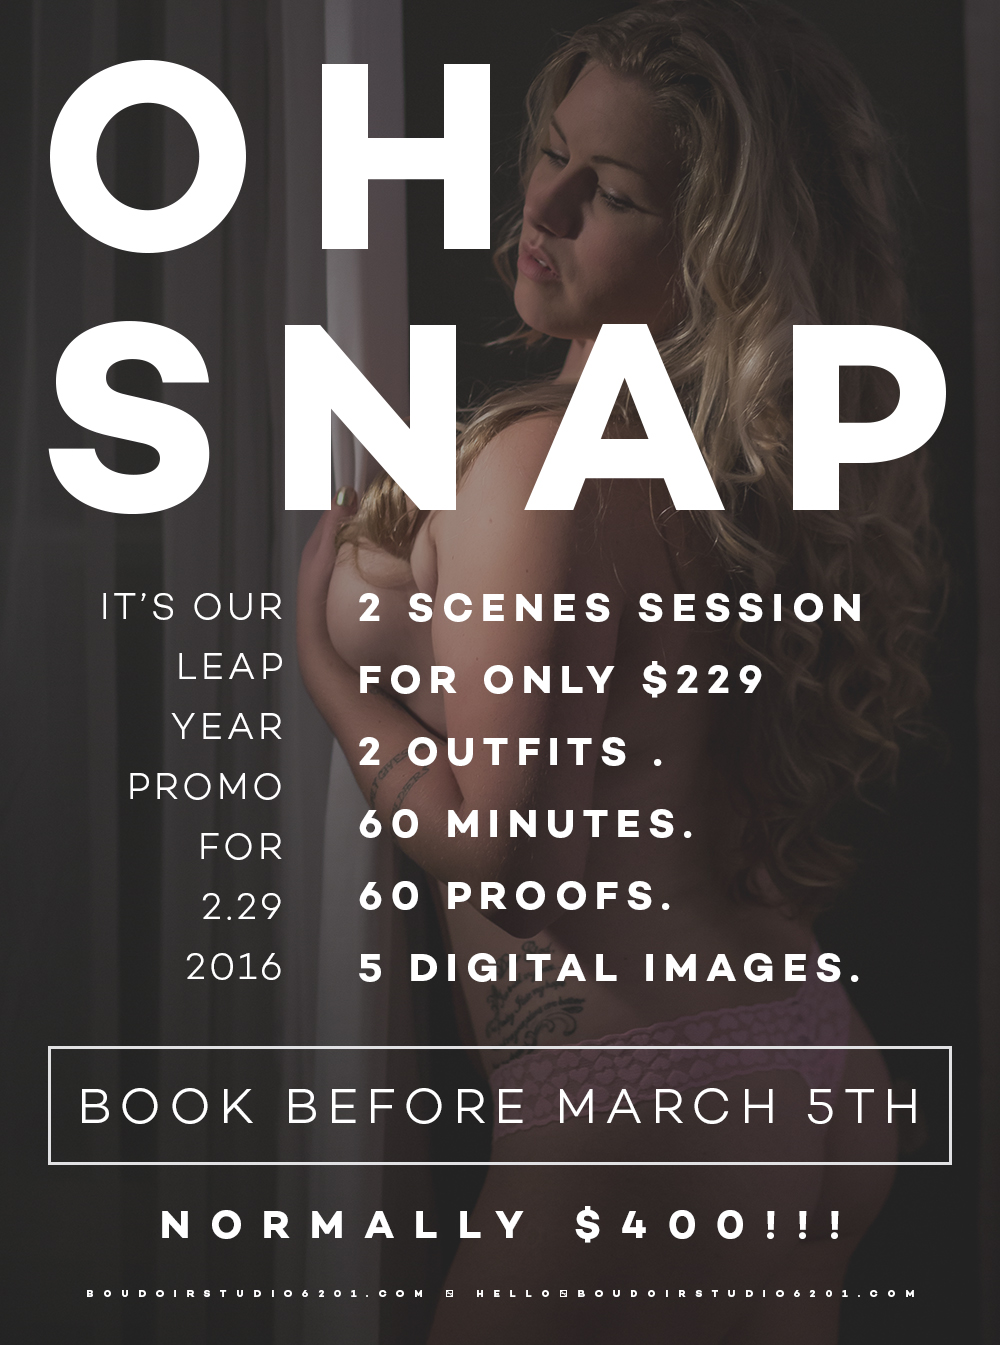 Rochester-boudoir-photography-leap-year-2016